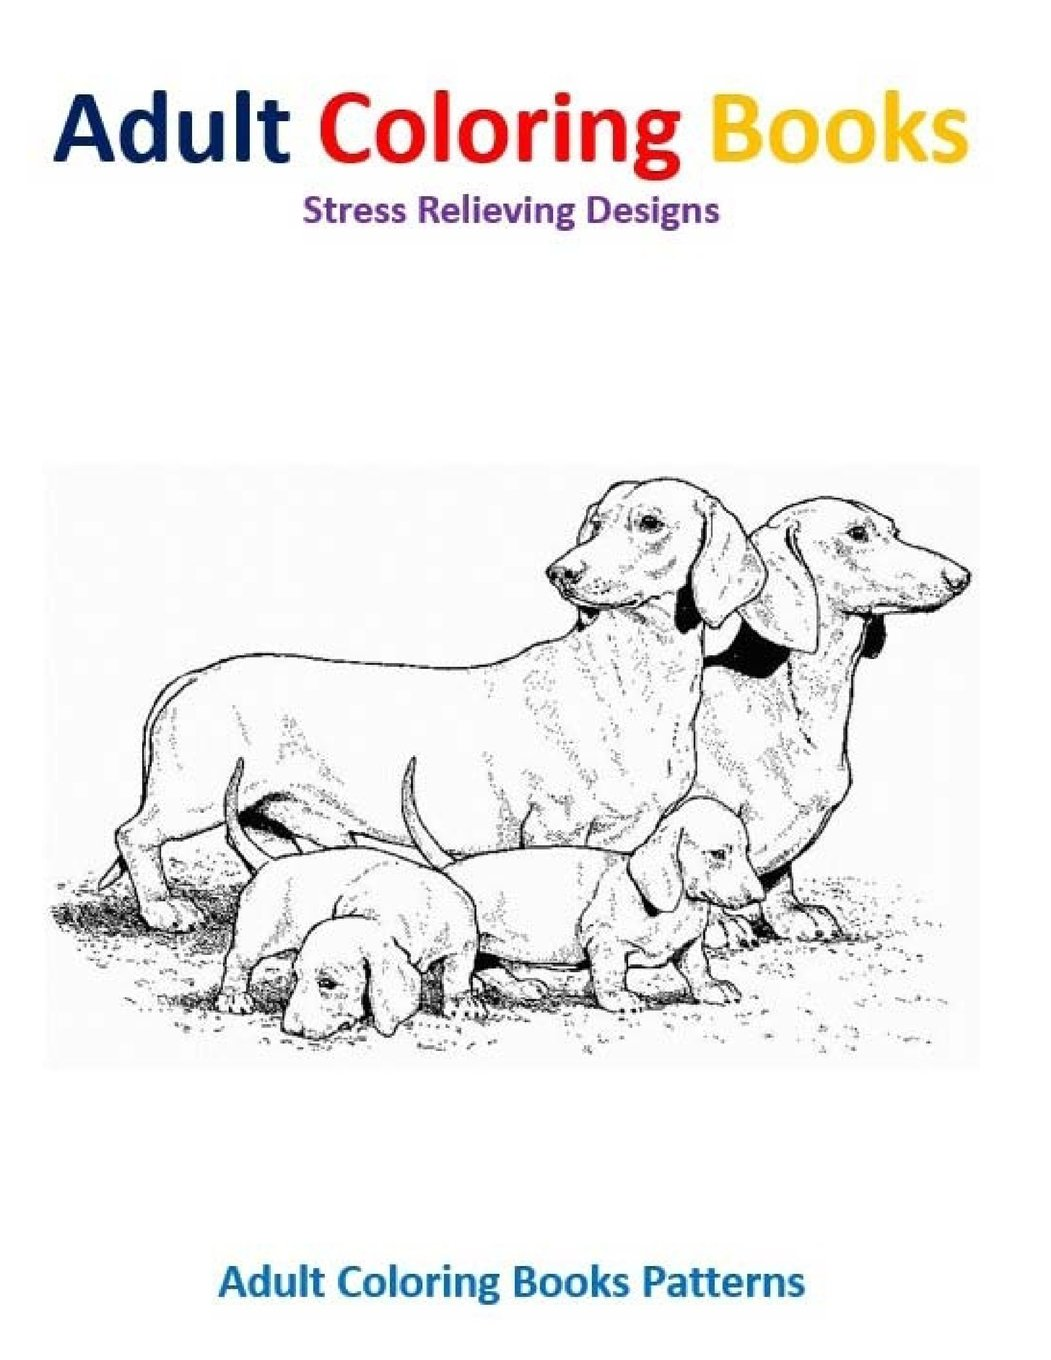 Amazon.com: Adult Coloring Books: Dog Stress Relief Designs ...